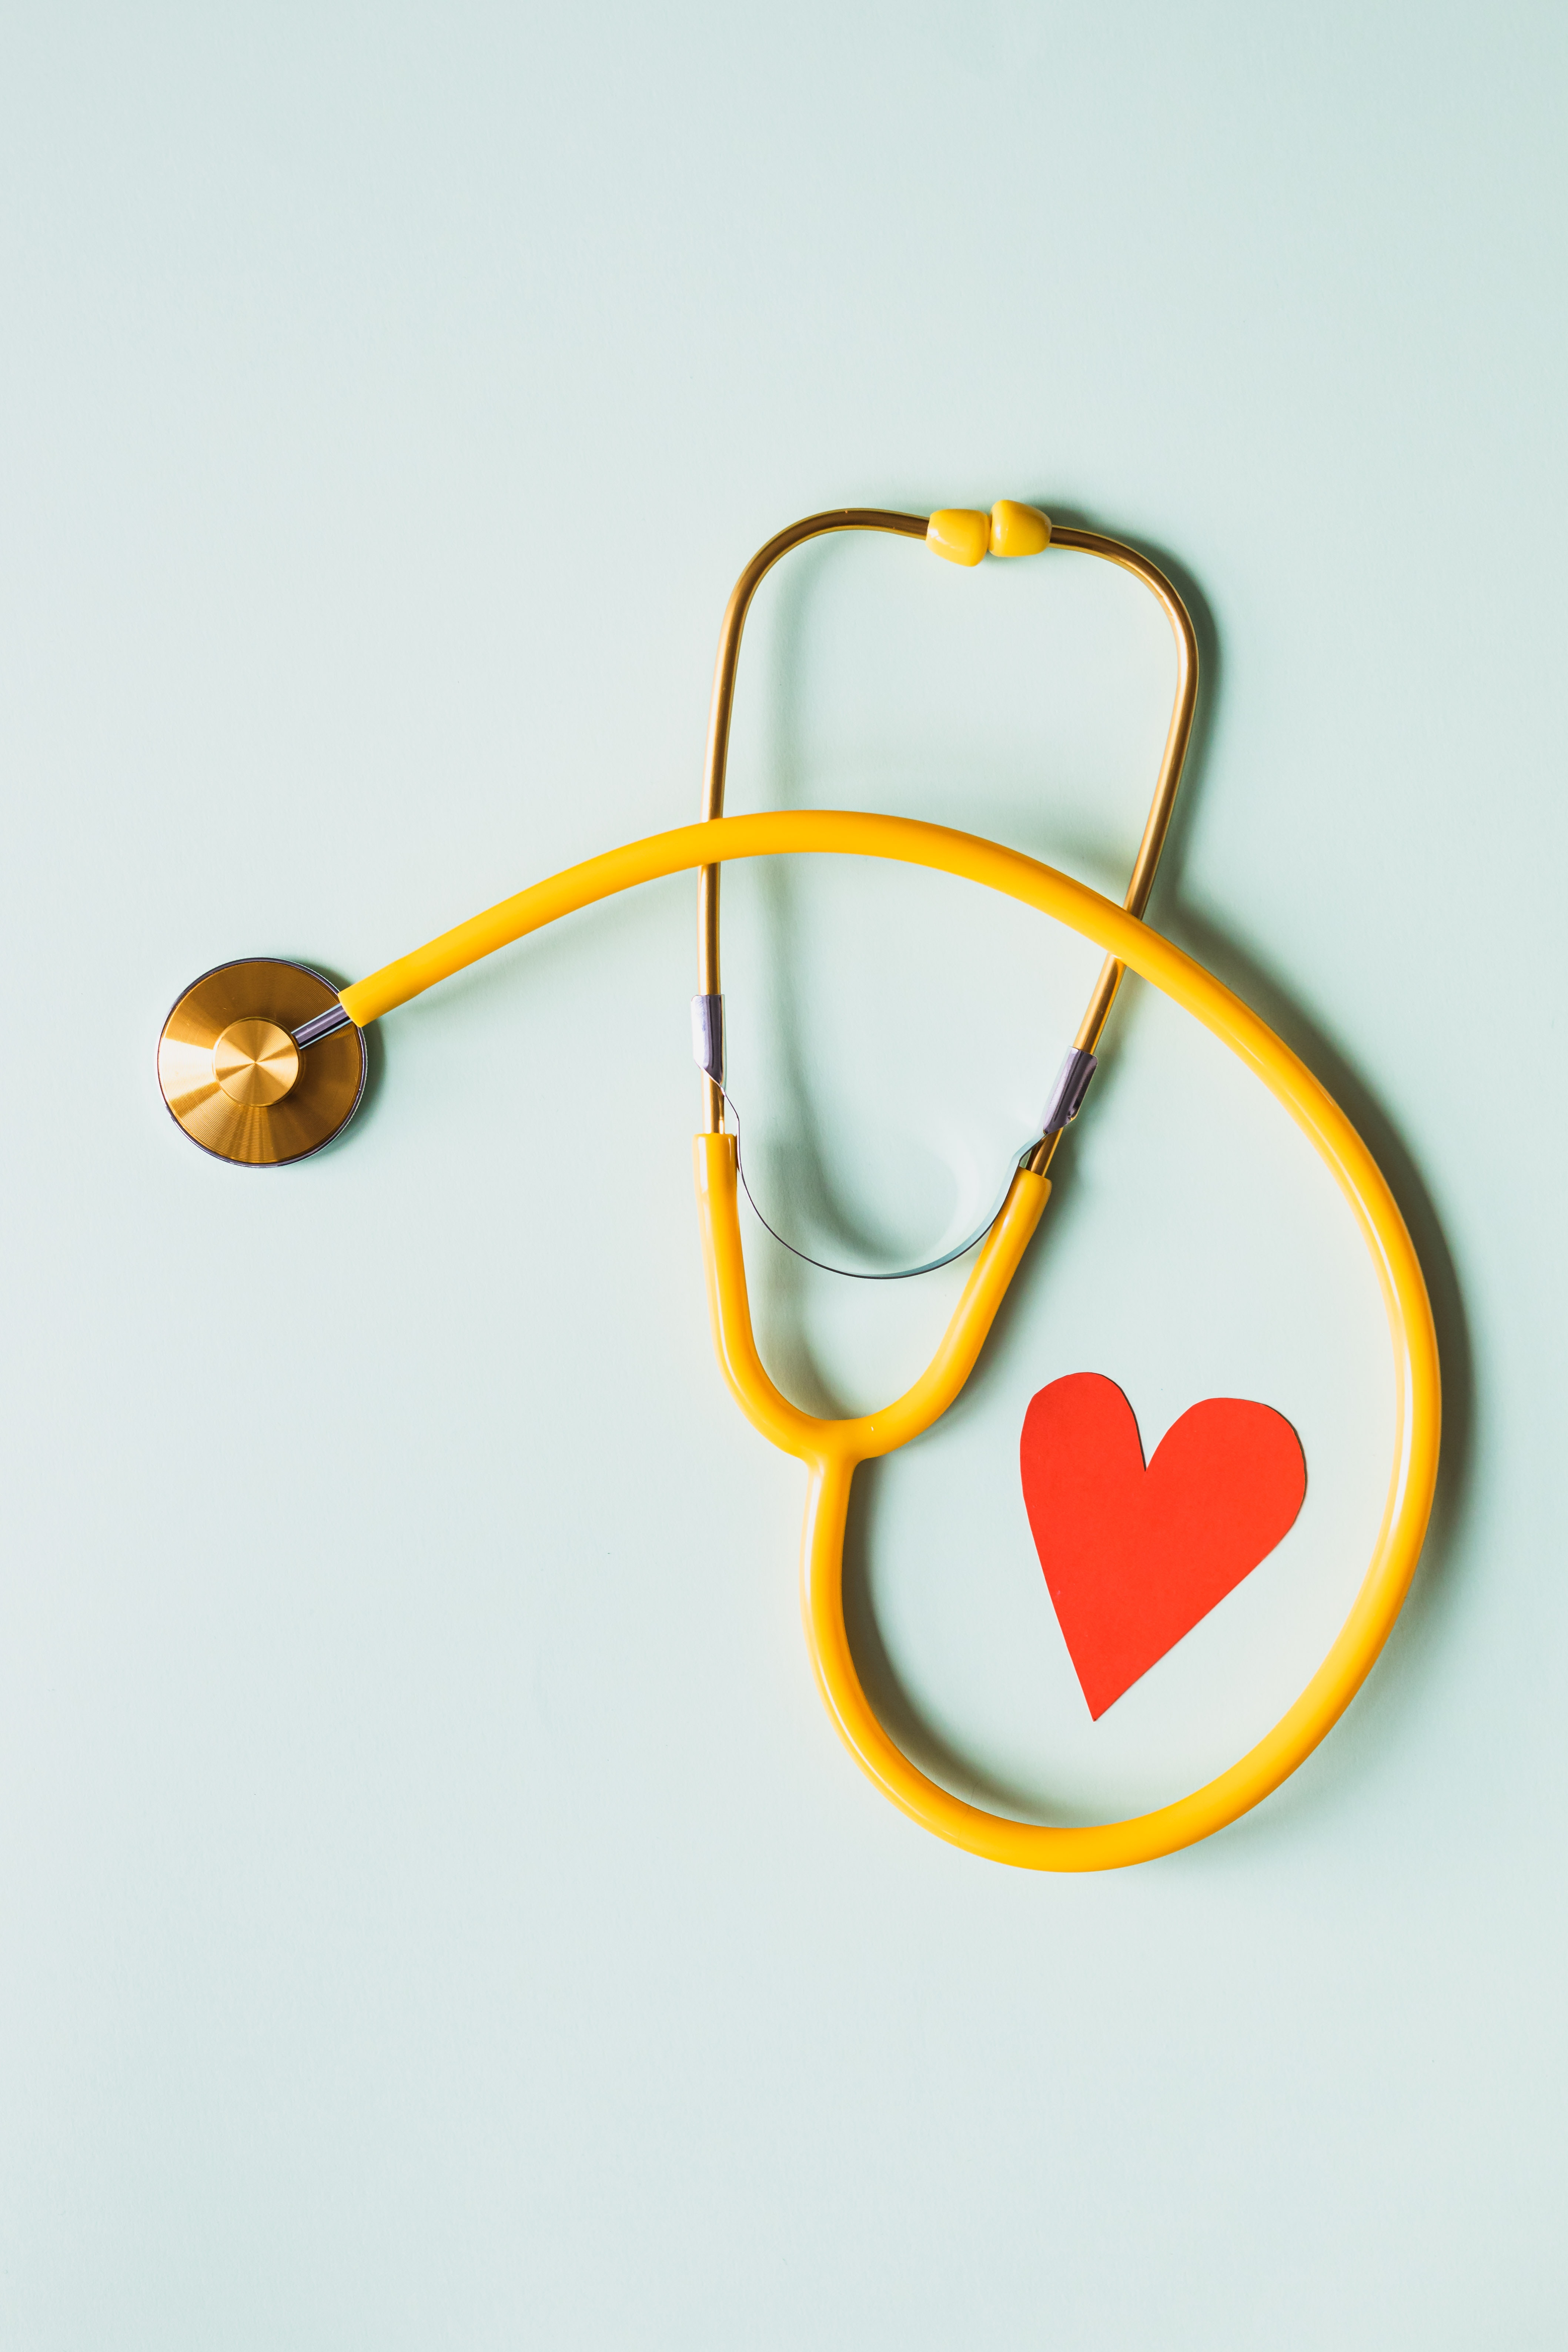 yellow stethoscope with paper heart